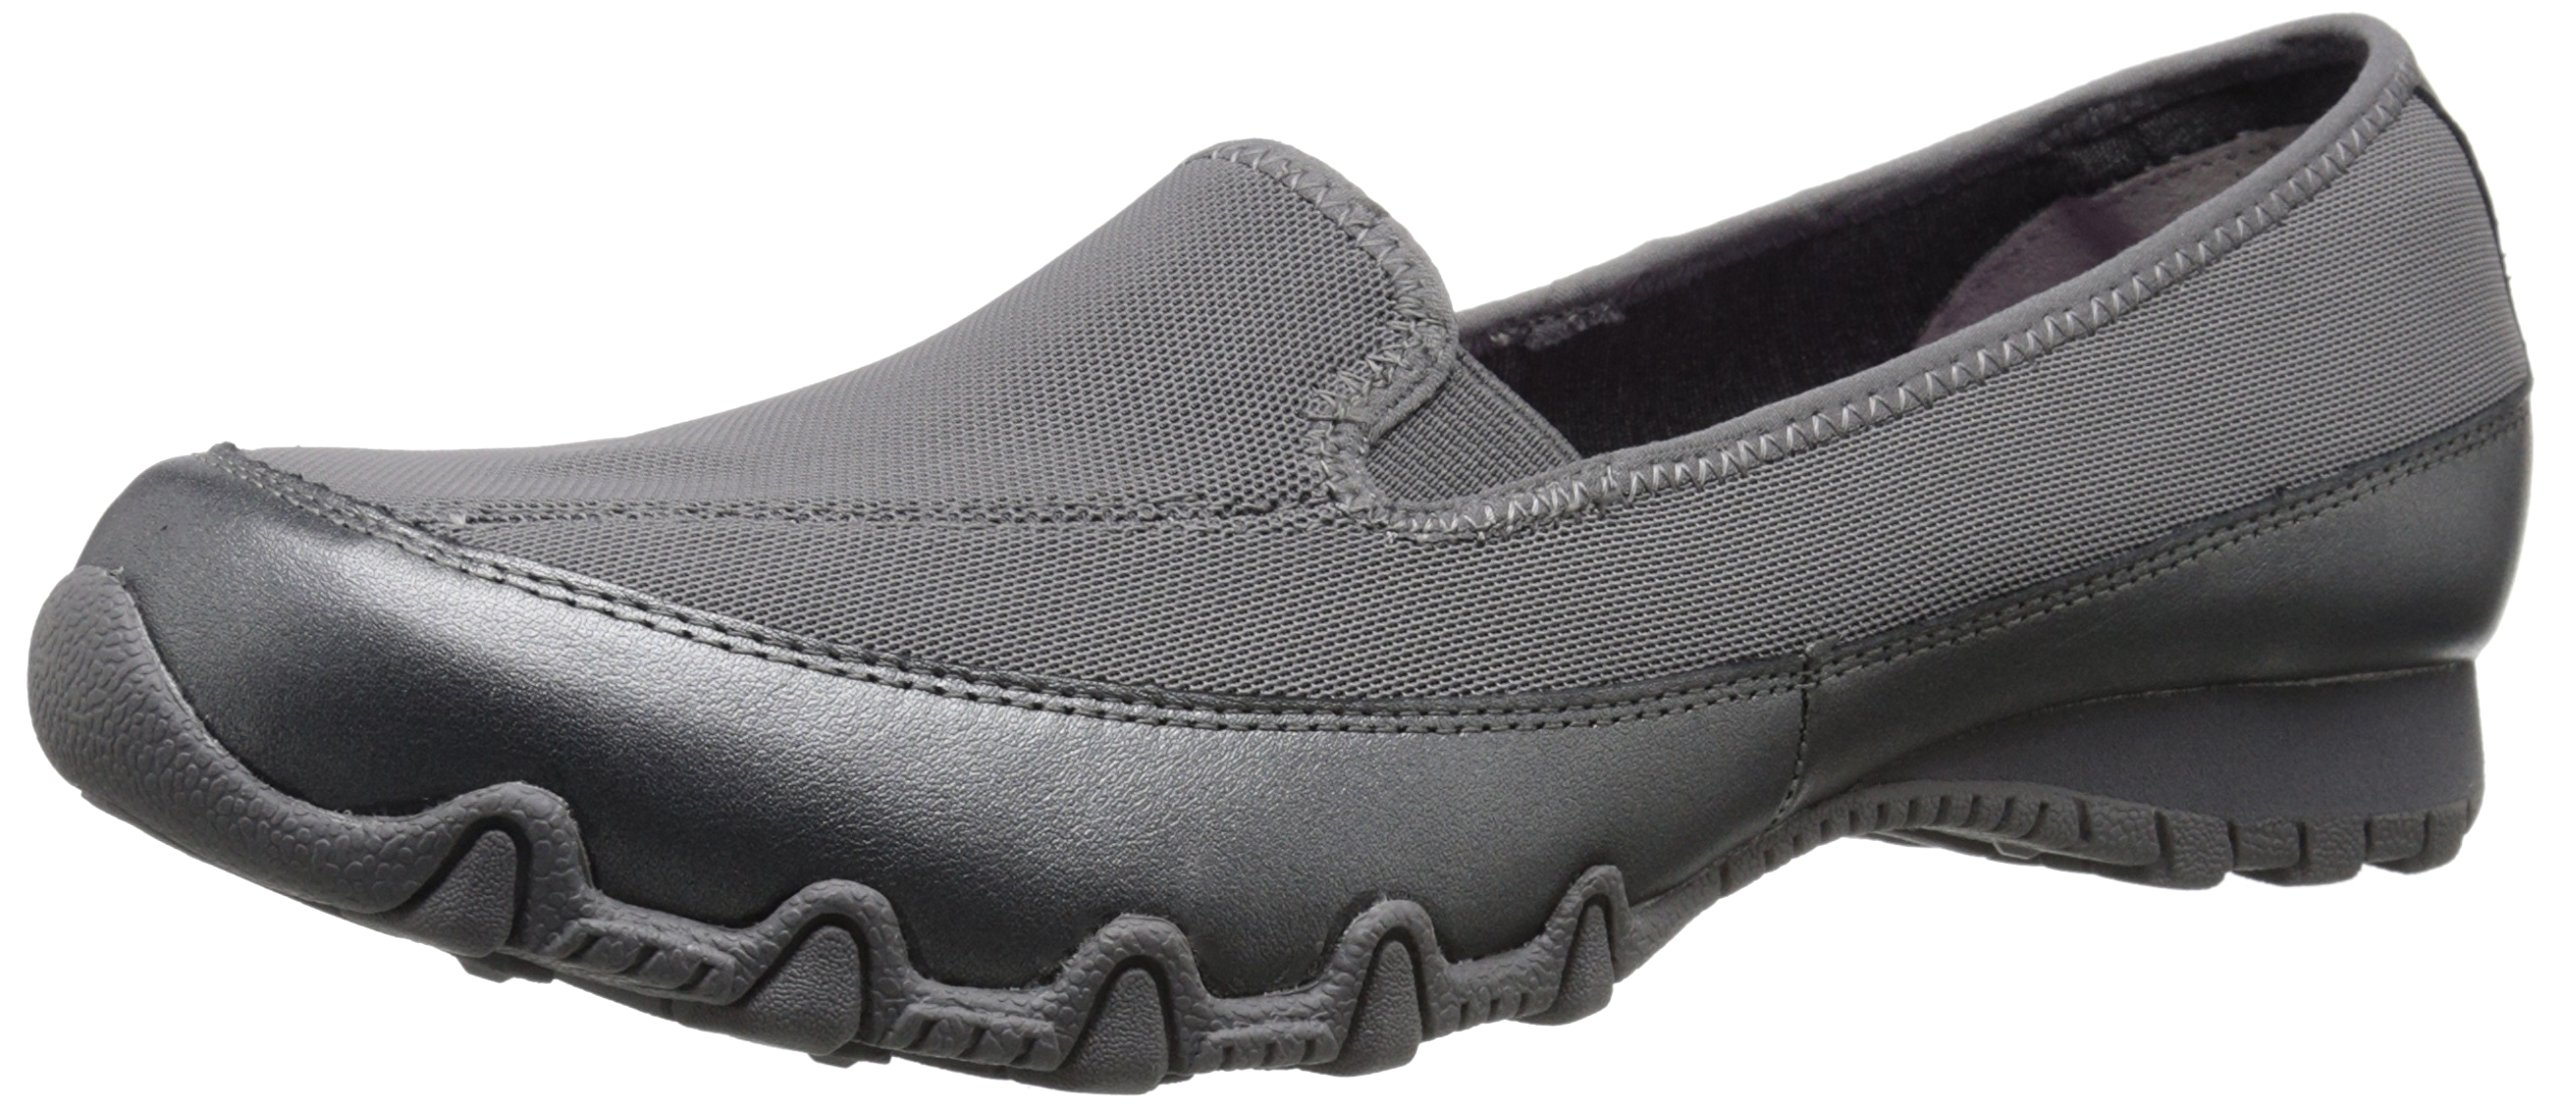 Skechers Women's Bikers pedestrian Memory Foam Slip-On Moccasin,7.5 M US,Charcoal Leather/Mesh